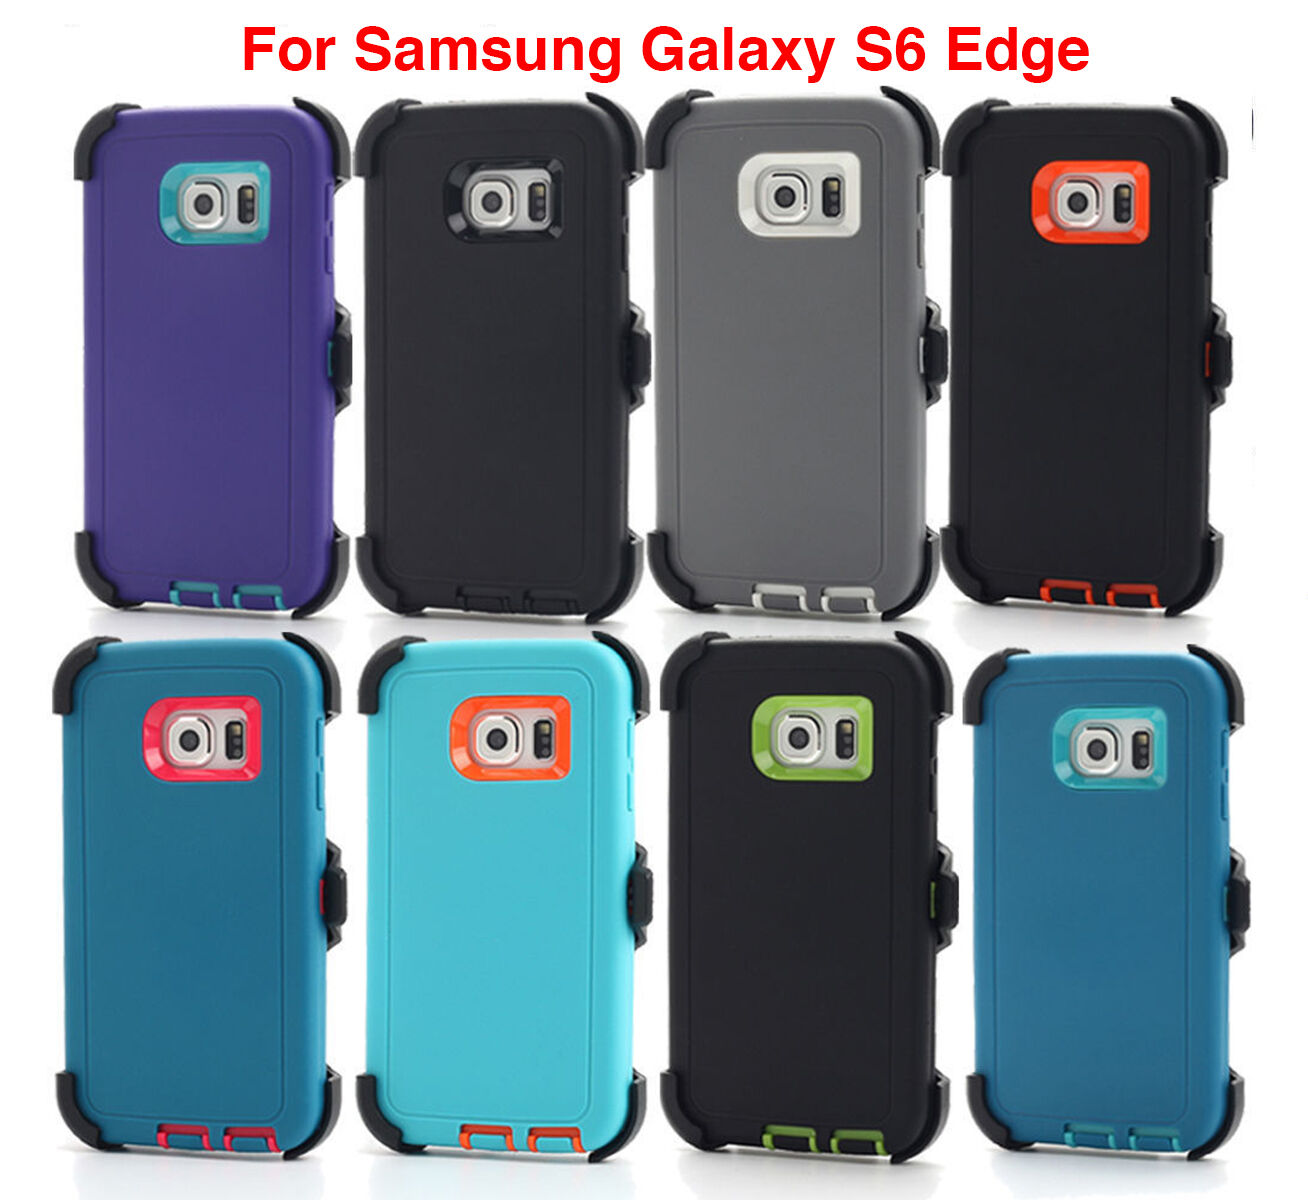 new product 0deb6 25102 Details about For Samsung Galaxy S6 Edge Case Cover Screen (Fits Otterbox  Defender Belt Clip)